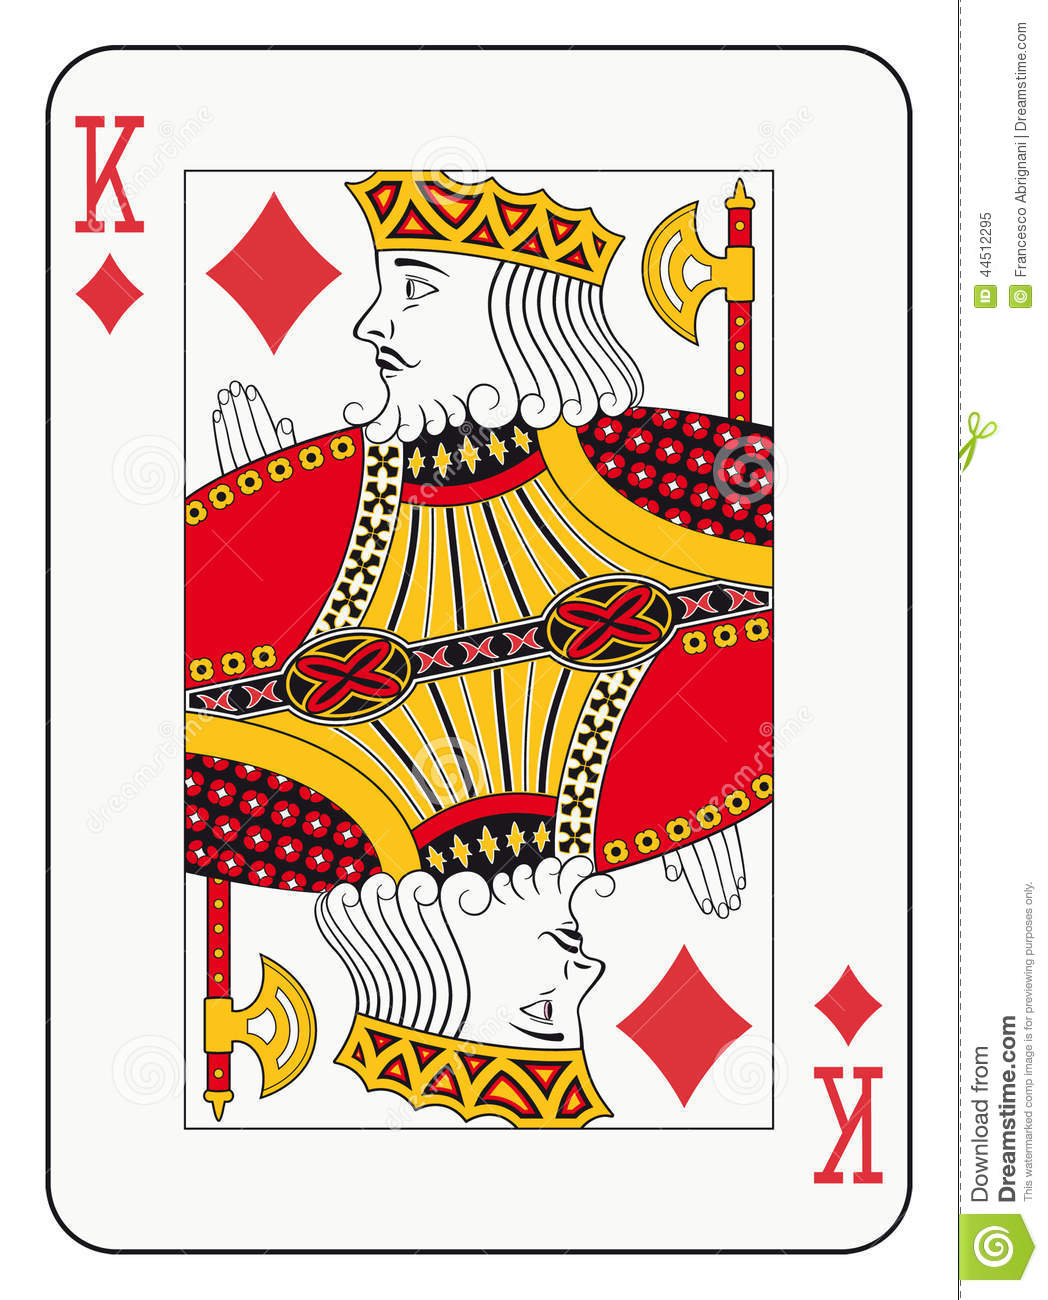 King of diamonds stock vector. Illustration of blackjack ...